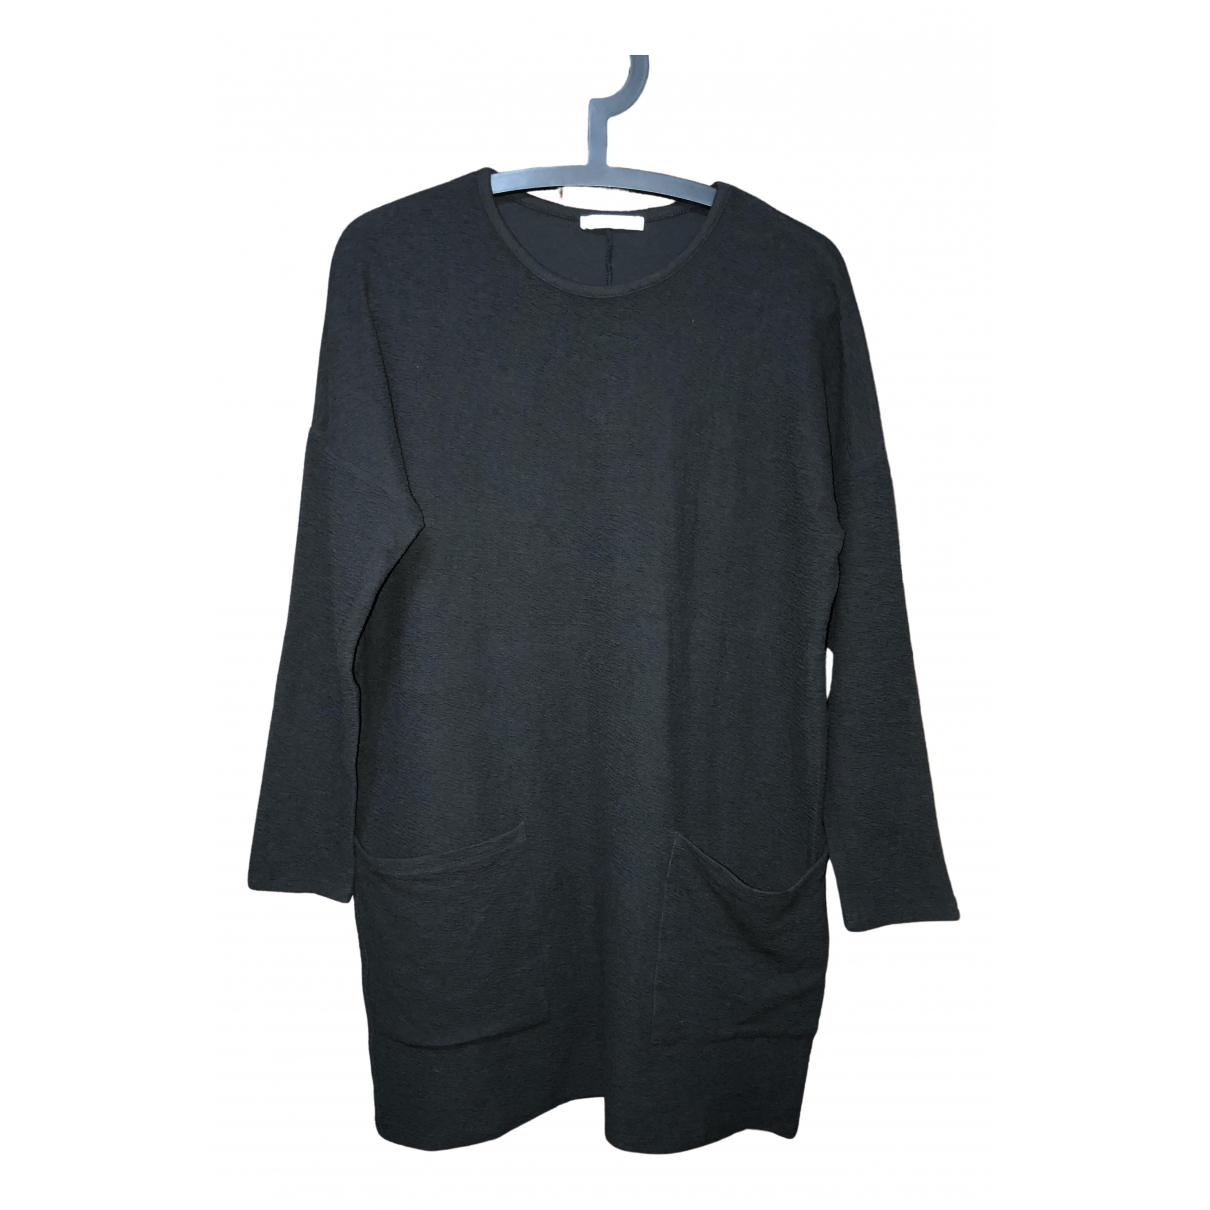 Zara \N Black Cotton  top for Women S International